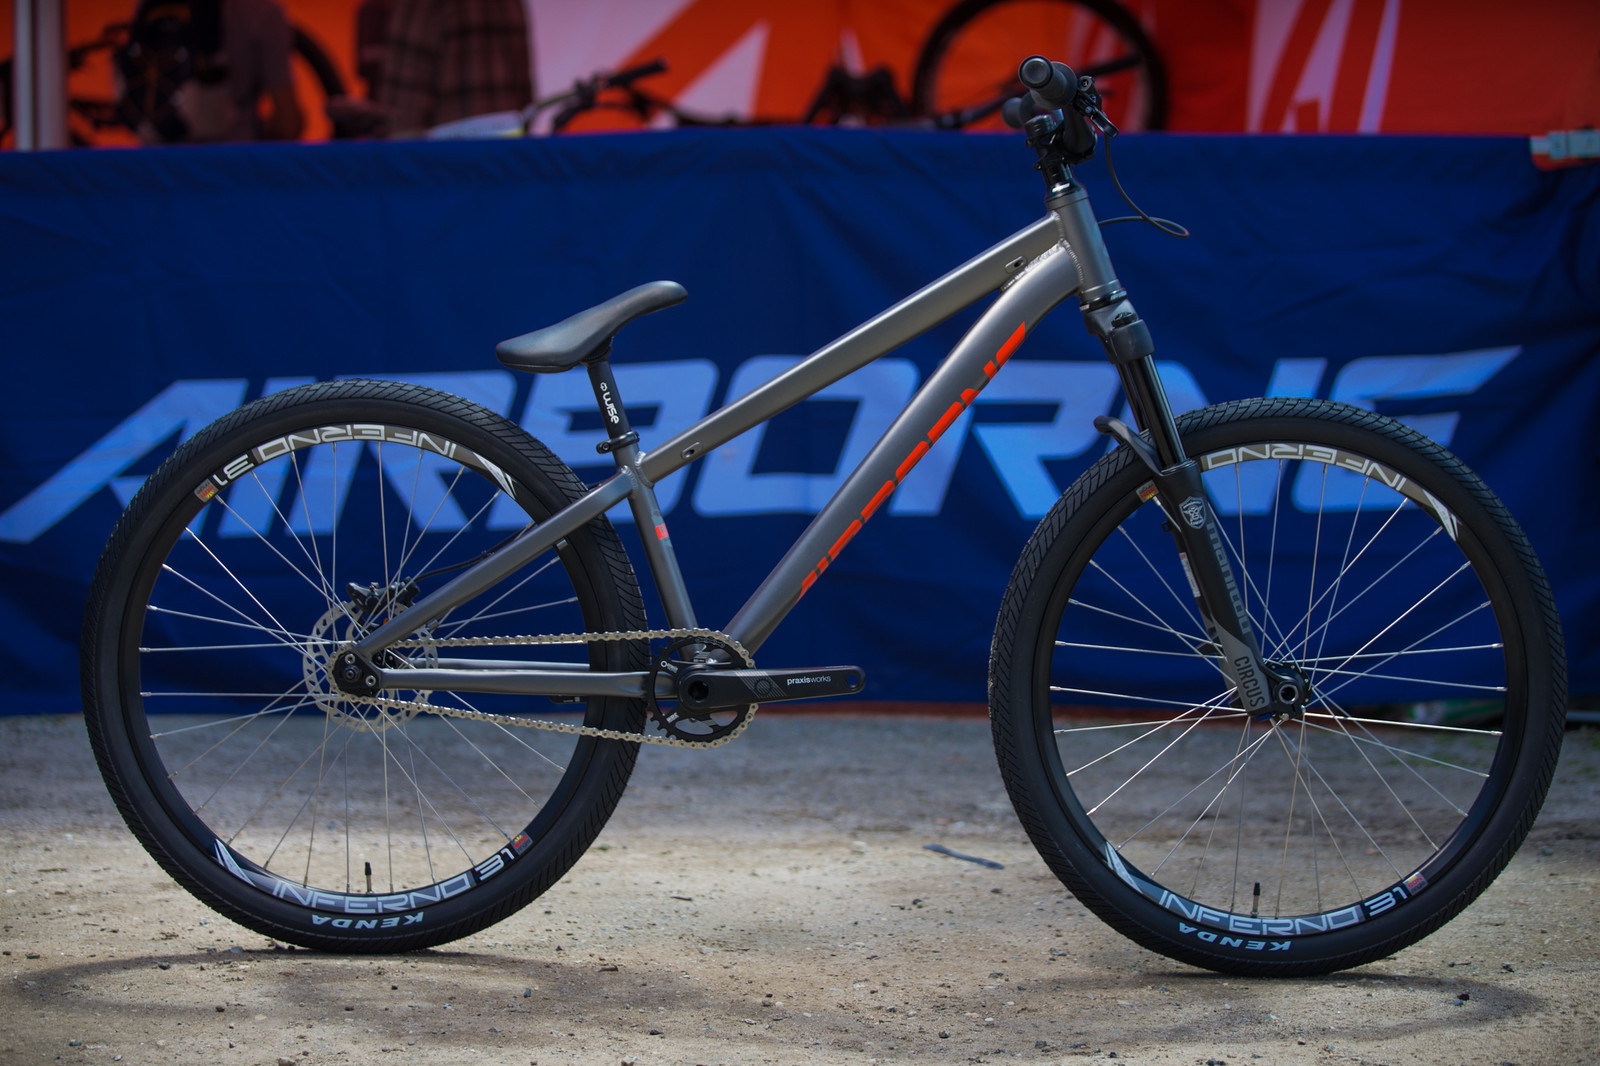 See the New Drew Bezanson Signature Series Airborne Skyhawk Dirt Jumper - Sea Otter Classic